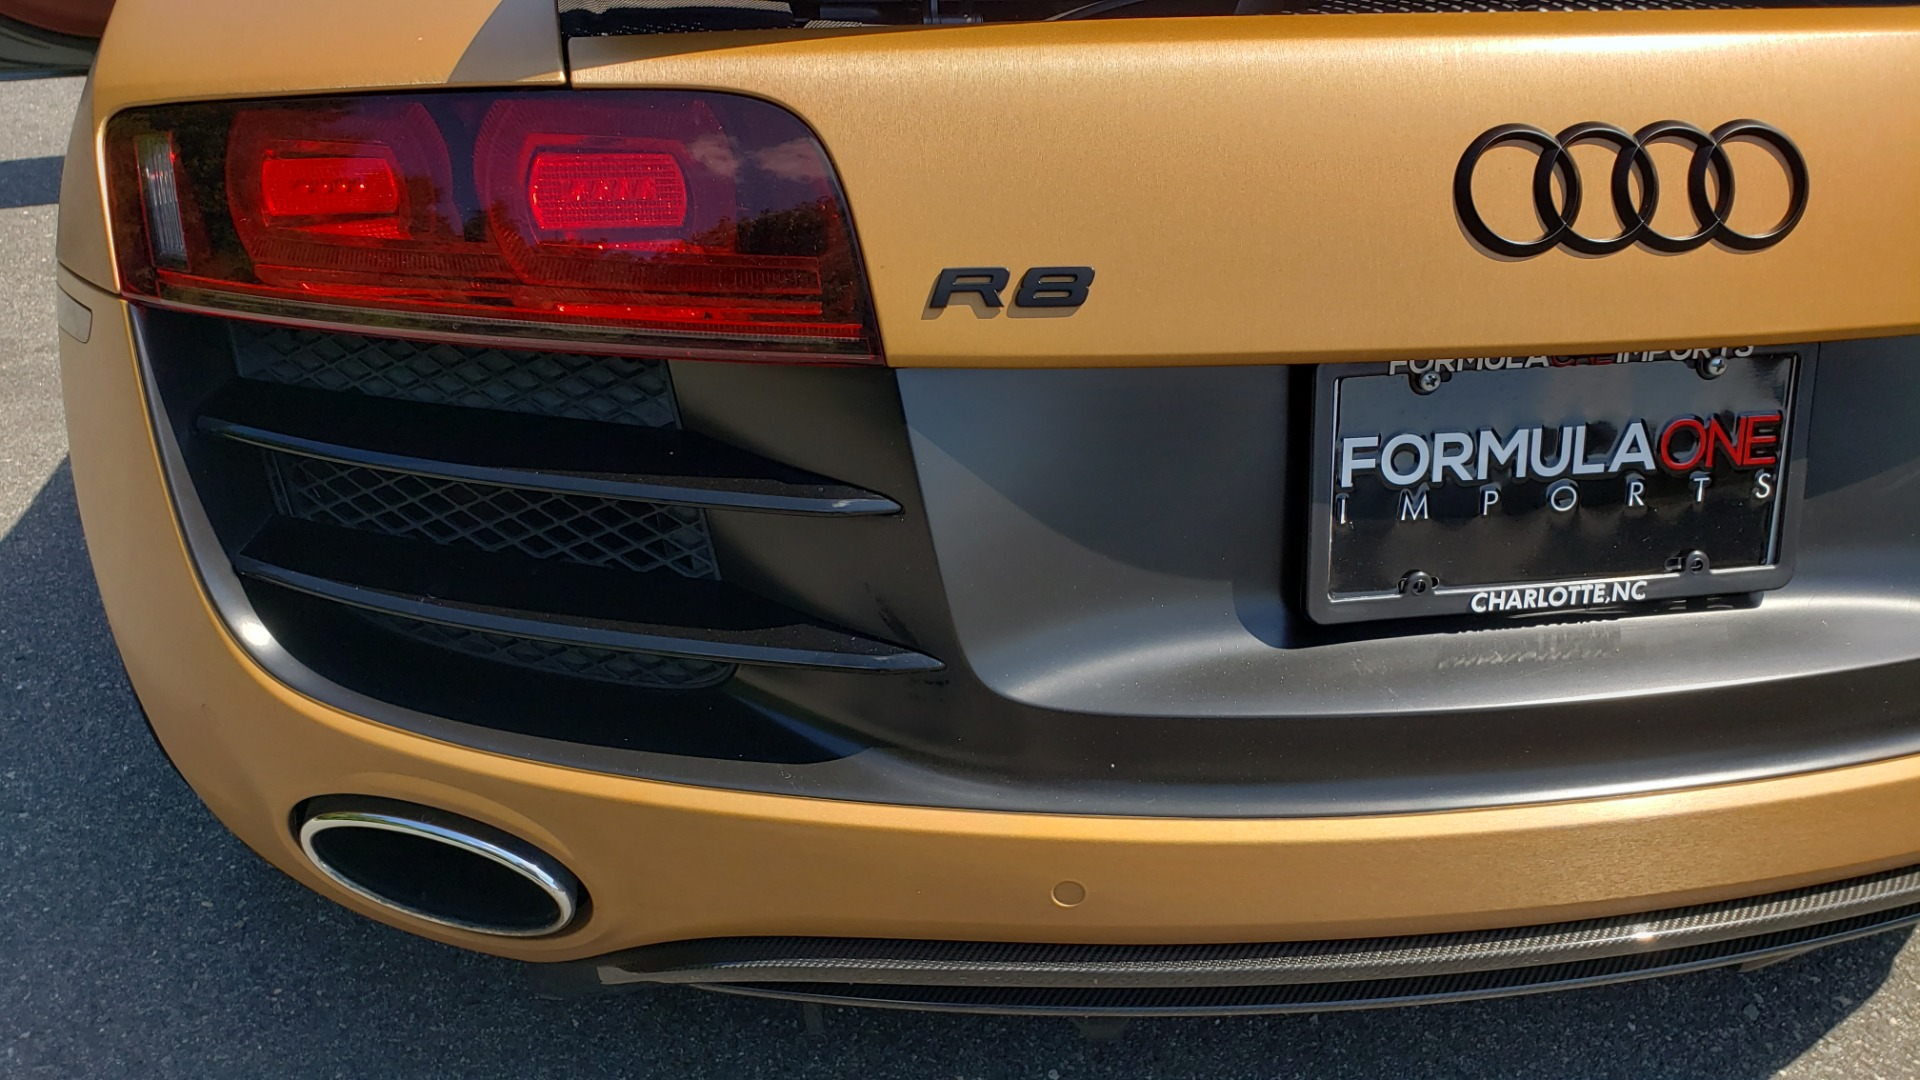 Used 2012 Audi R8 5.2L V10 / AWD / COUPE / NAV / 6-SPD AUTO / CUSTOM WRAP for sale Sold at Formula Imports in Charlotte NC 28227 21